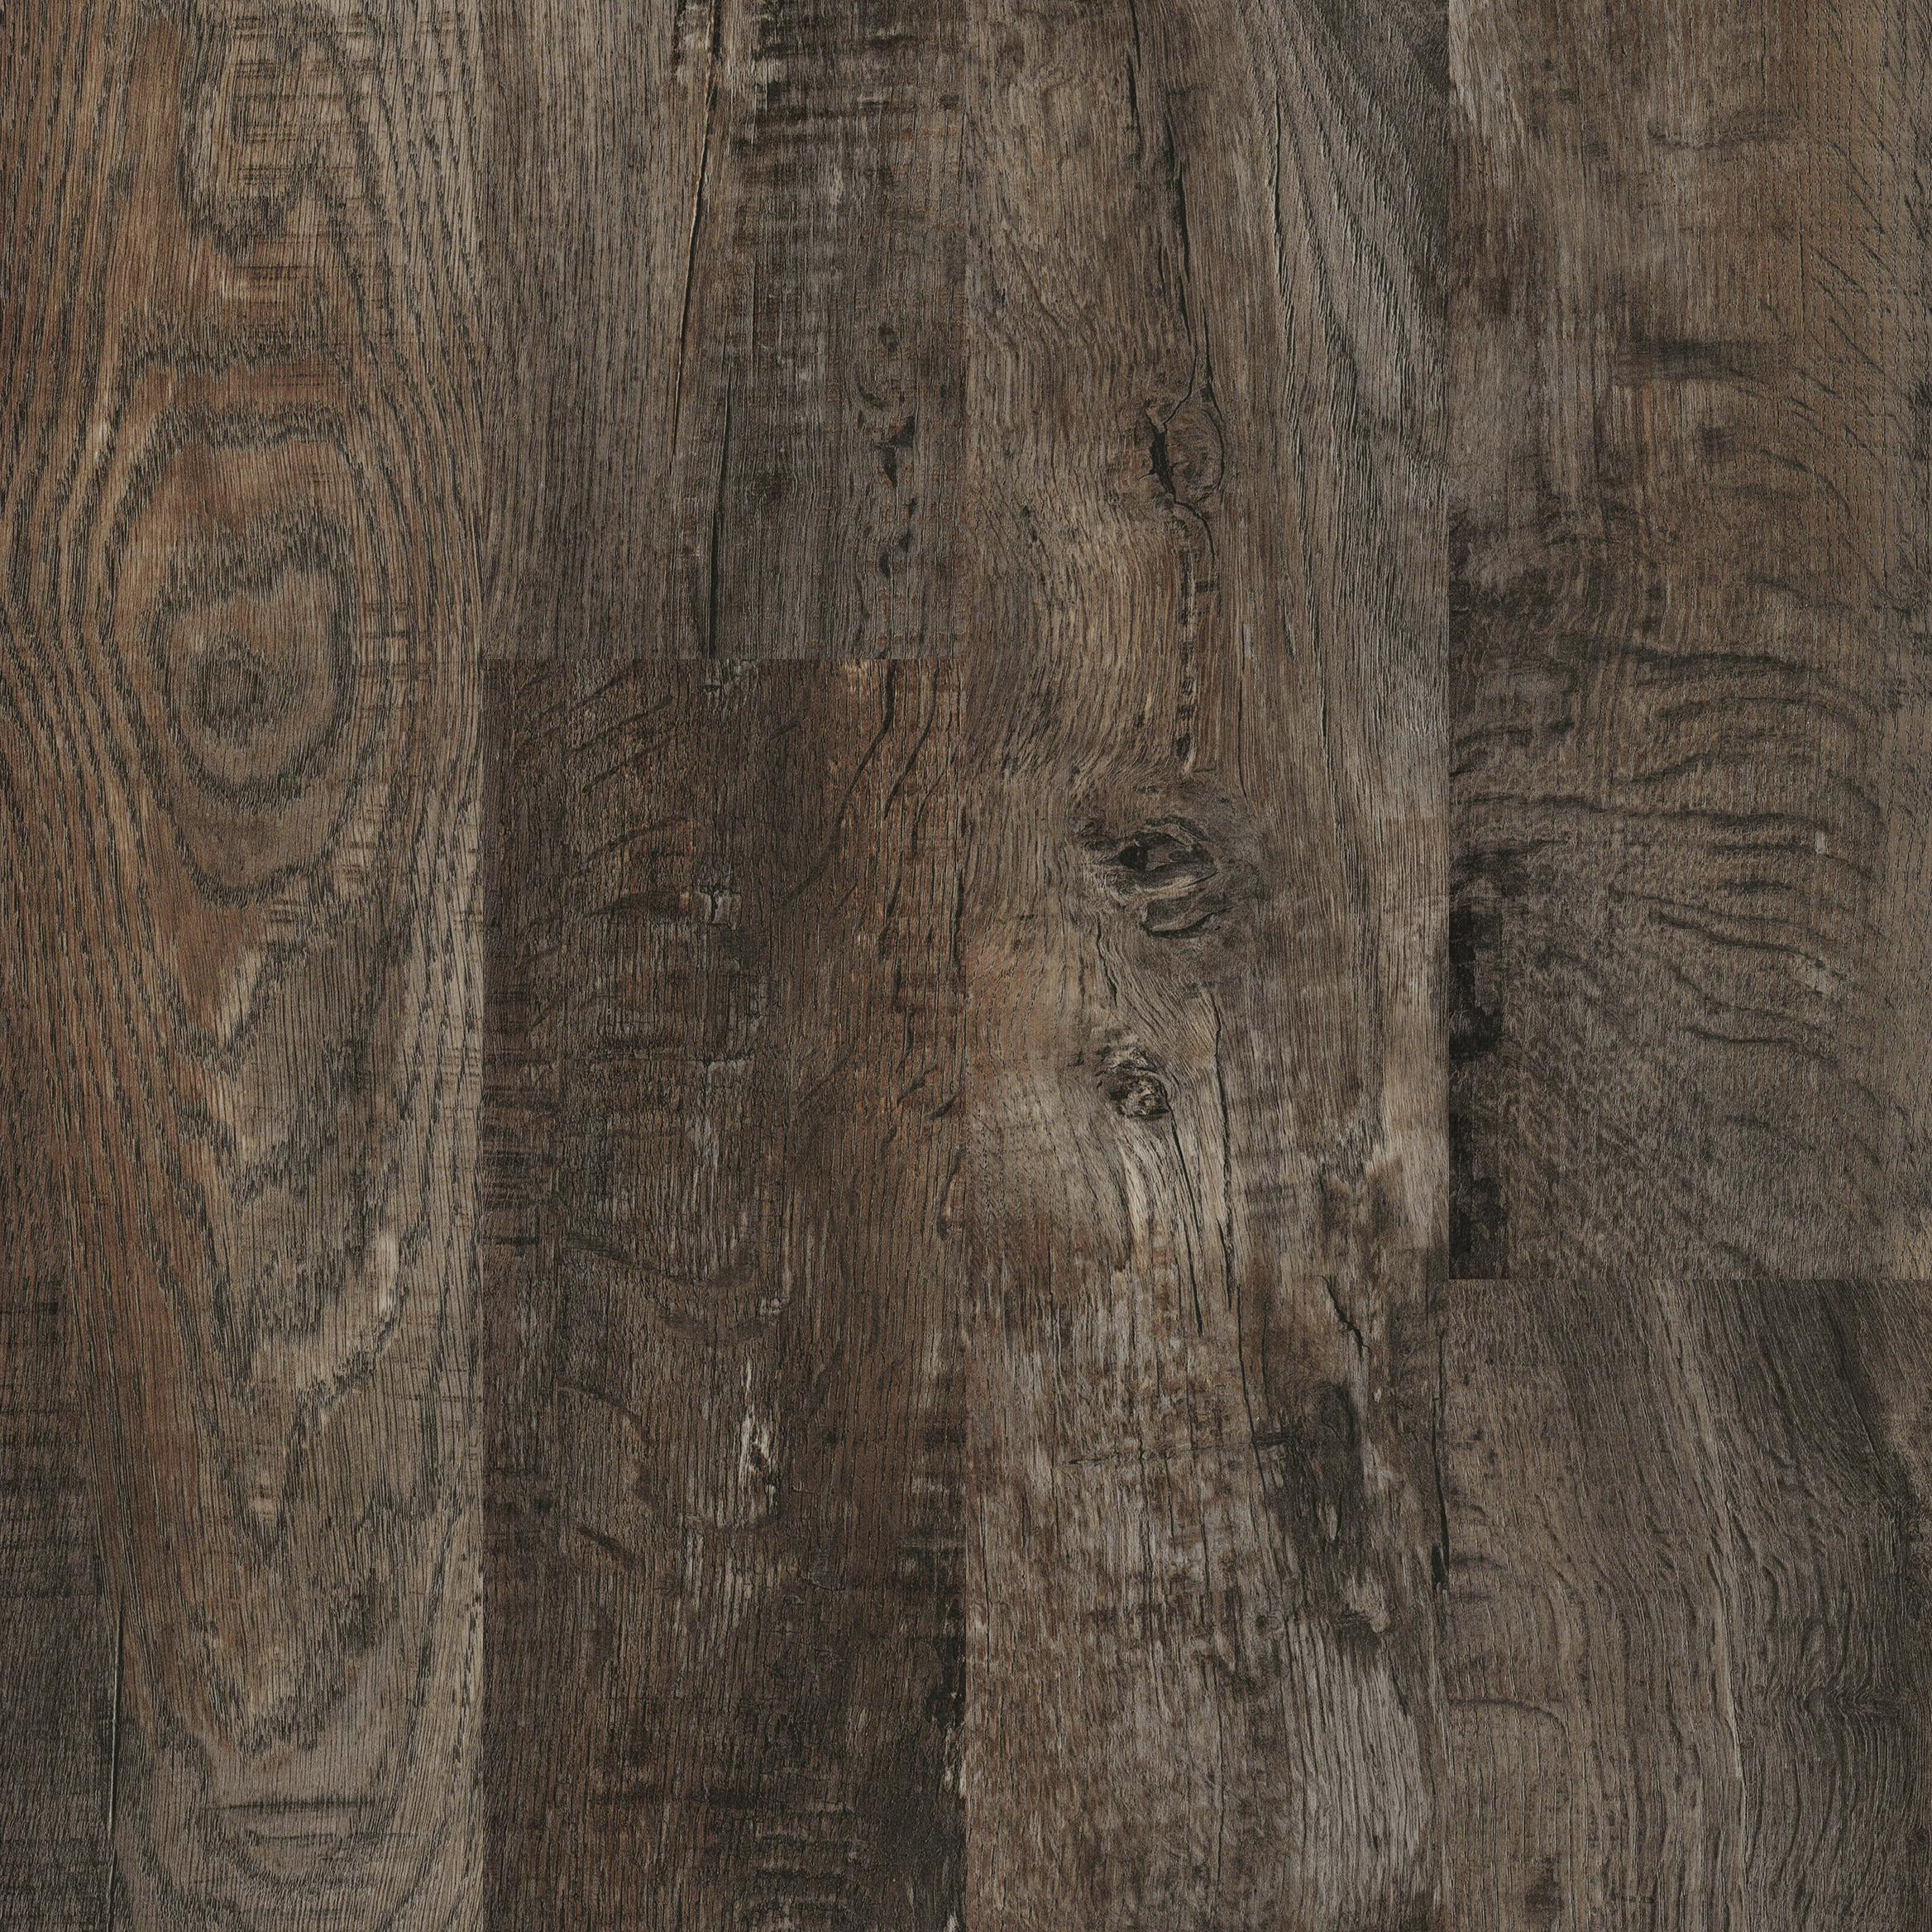 unfinished hardwood flooring menards of home expressions hearthstone oak 6 wide luxury vinyl plank flooring pertaining to 360390 5 84 x 35 8 approved